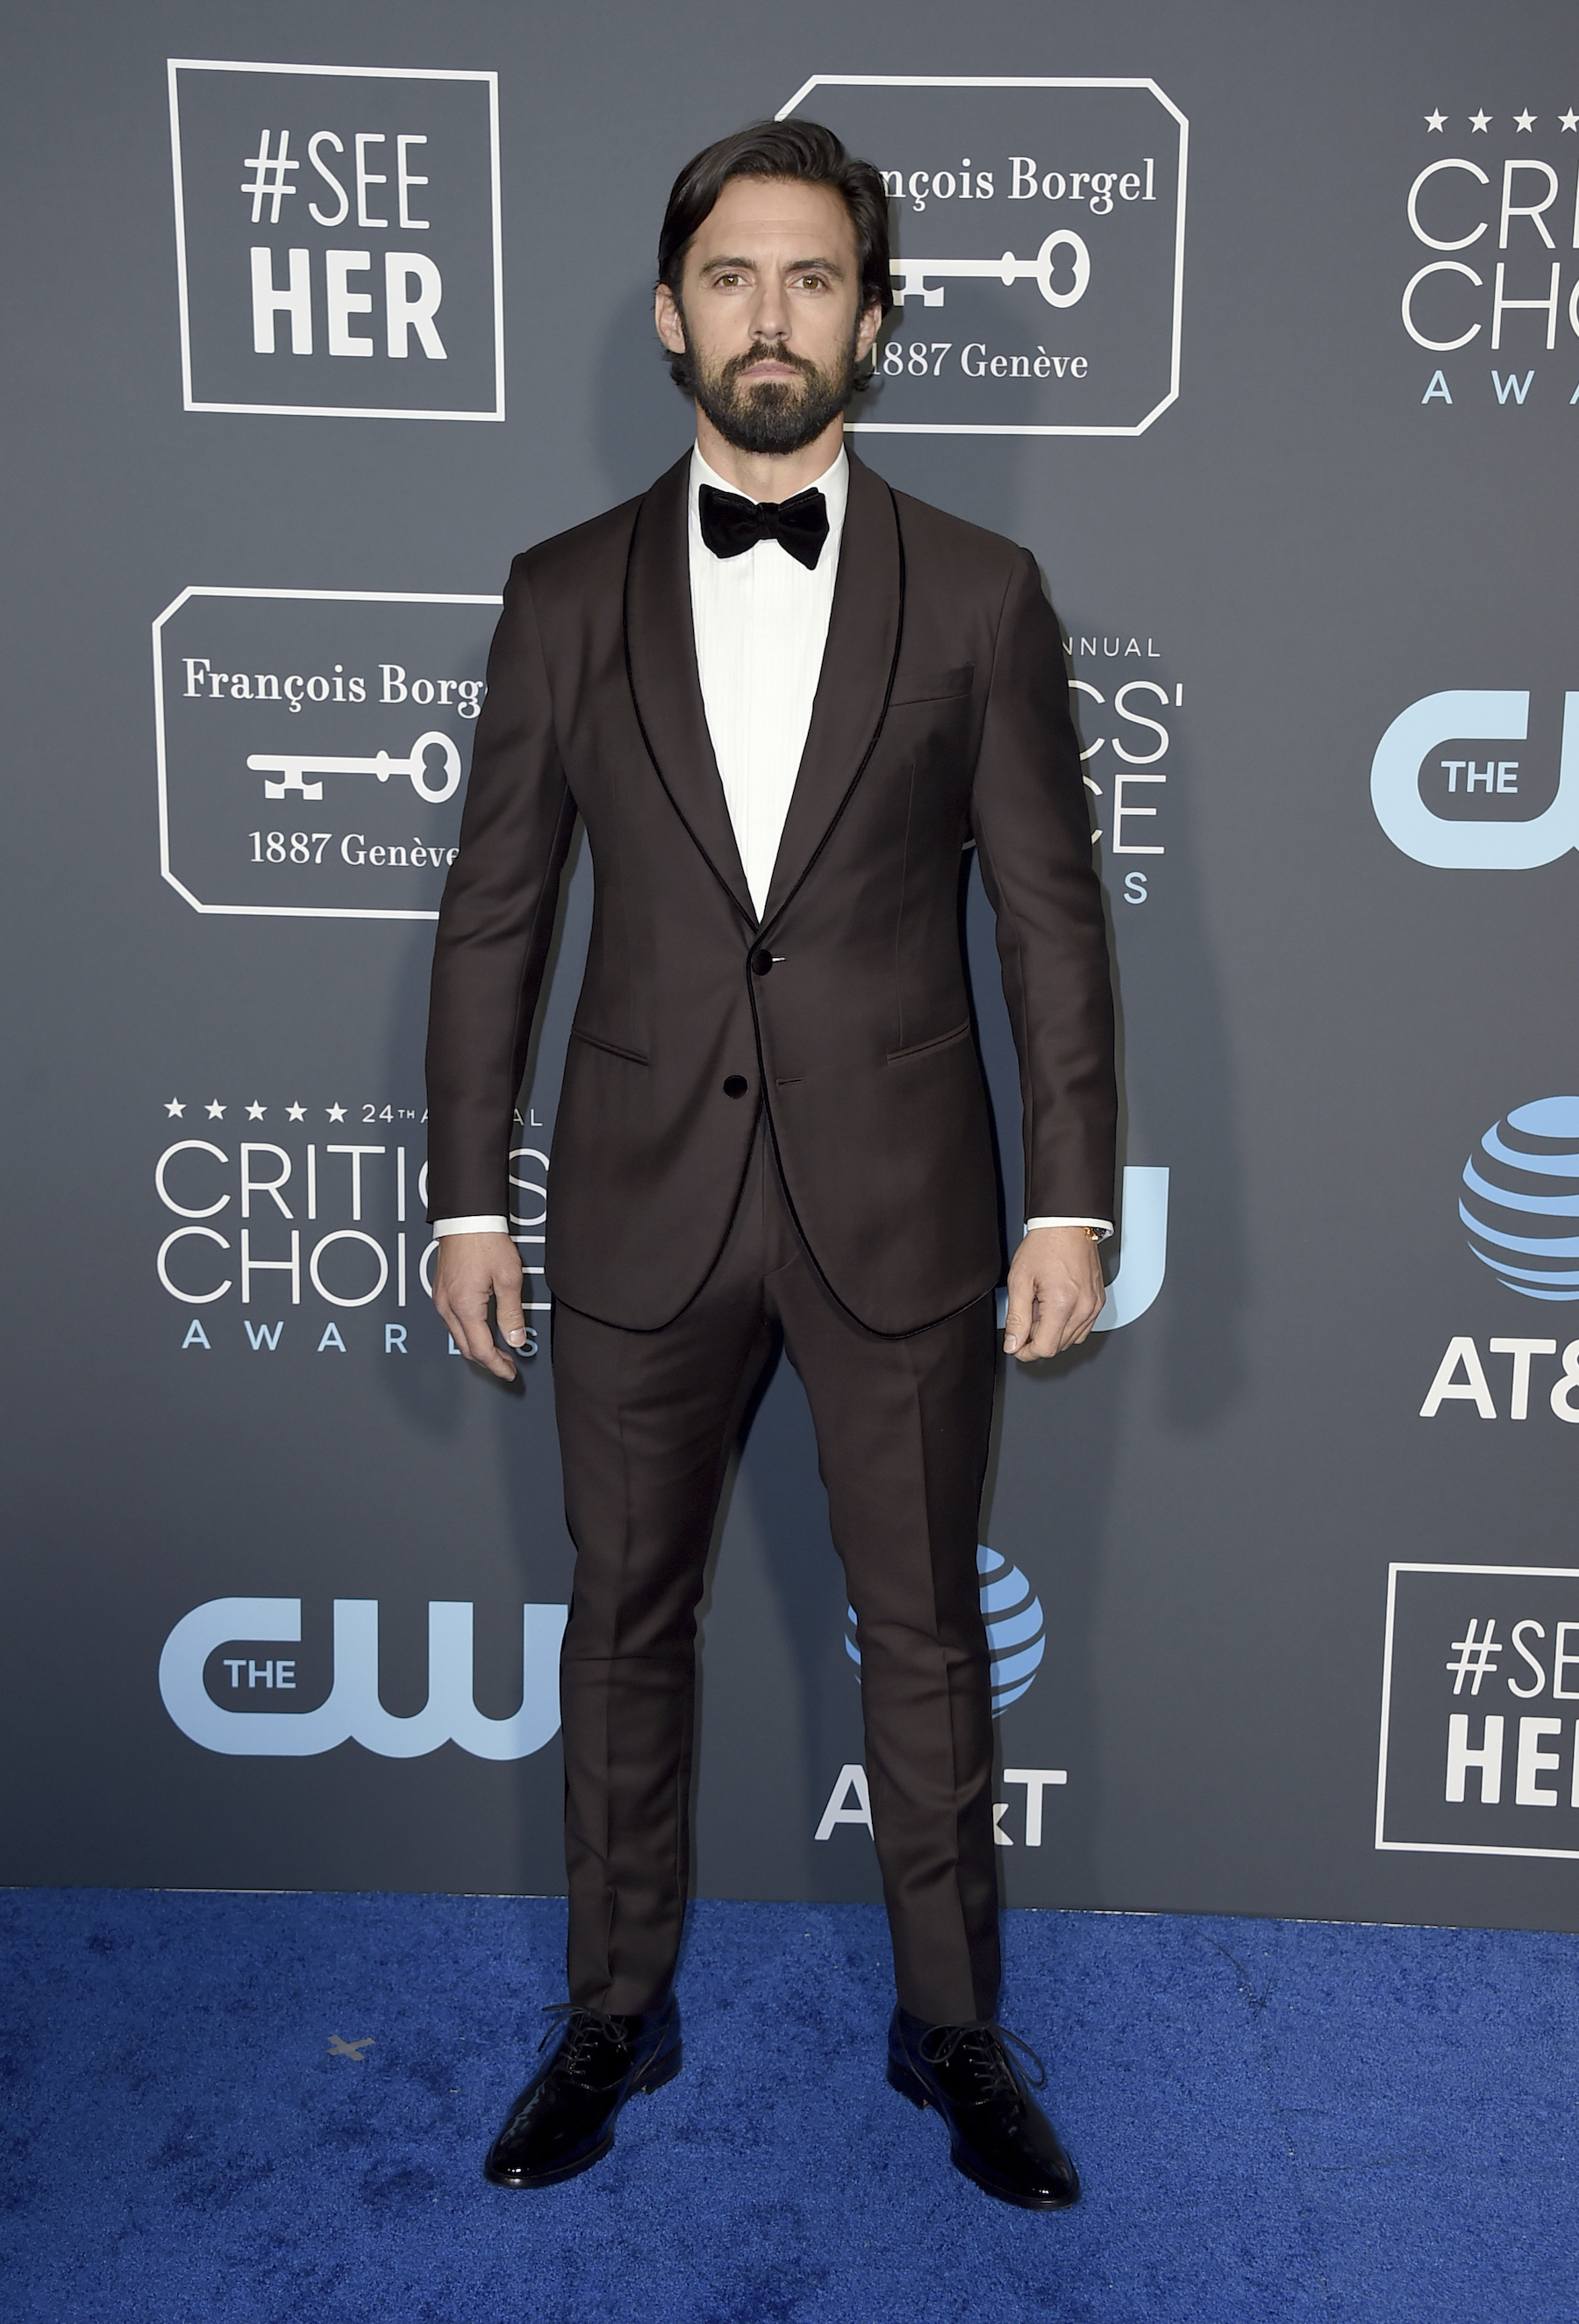 "<div class=""meta image-caption""><div class=""origin-logo origin-image ap""><span>AP</span></div><span class=""caption-text"">Milo Ventimiglia arrives at the 24th annual Critics' Choice Awards on Sunday, Jan. 13, 2019, at the Barker Hangar in Santa Monica, Calif. (Jordan Strauss/Invision/AP)</span></div>"